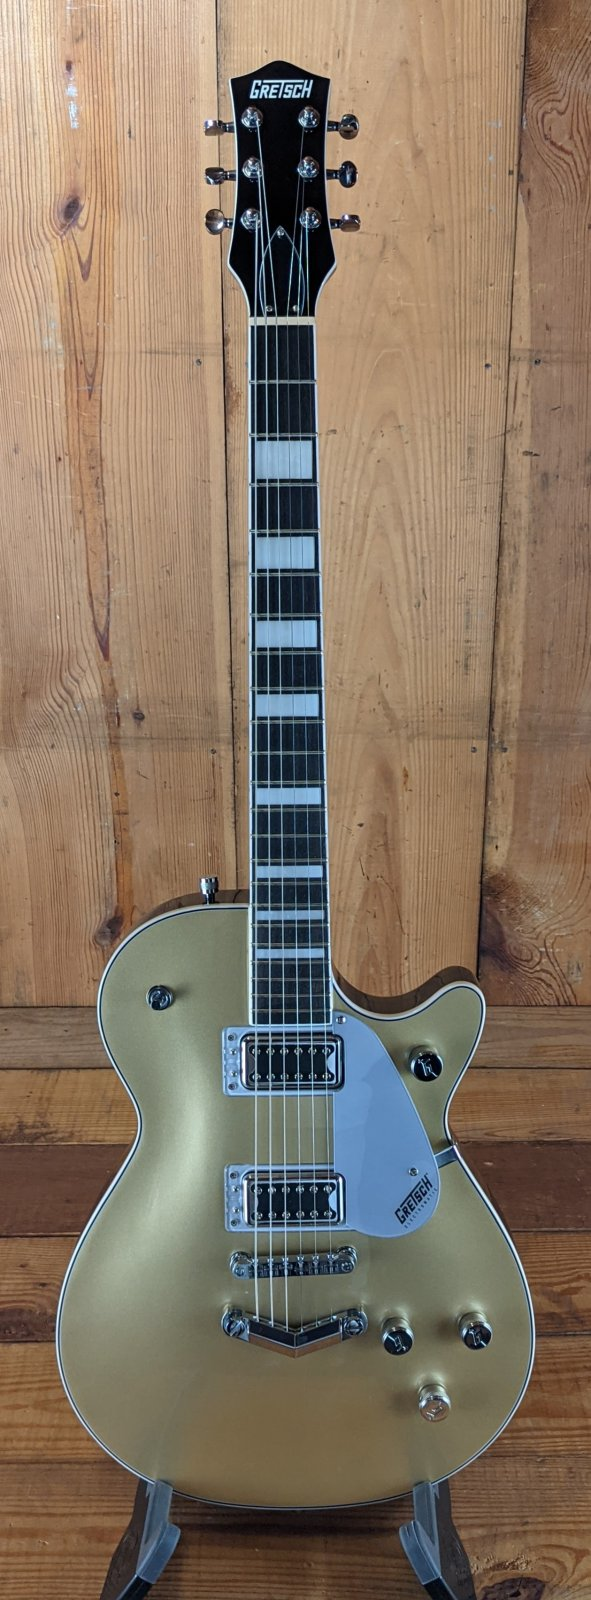 Gretsch G5220 Electromatic Jet BT Single-Cut with V-Stoptail